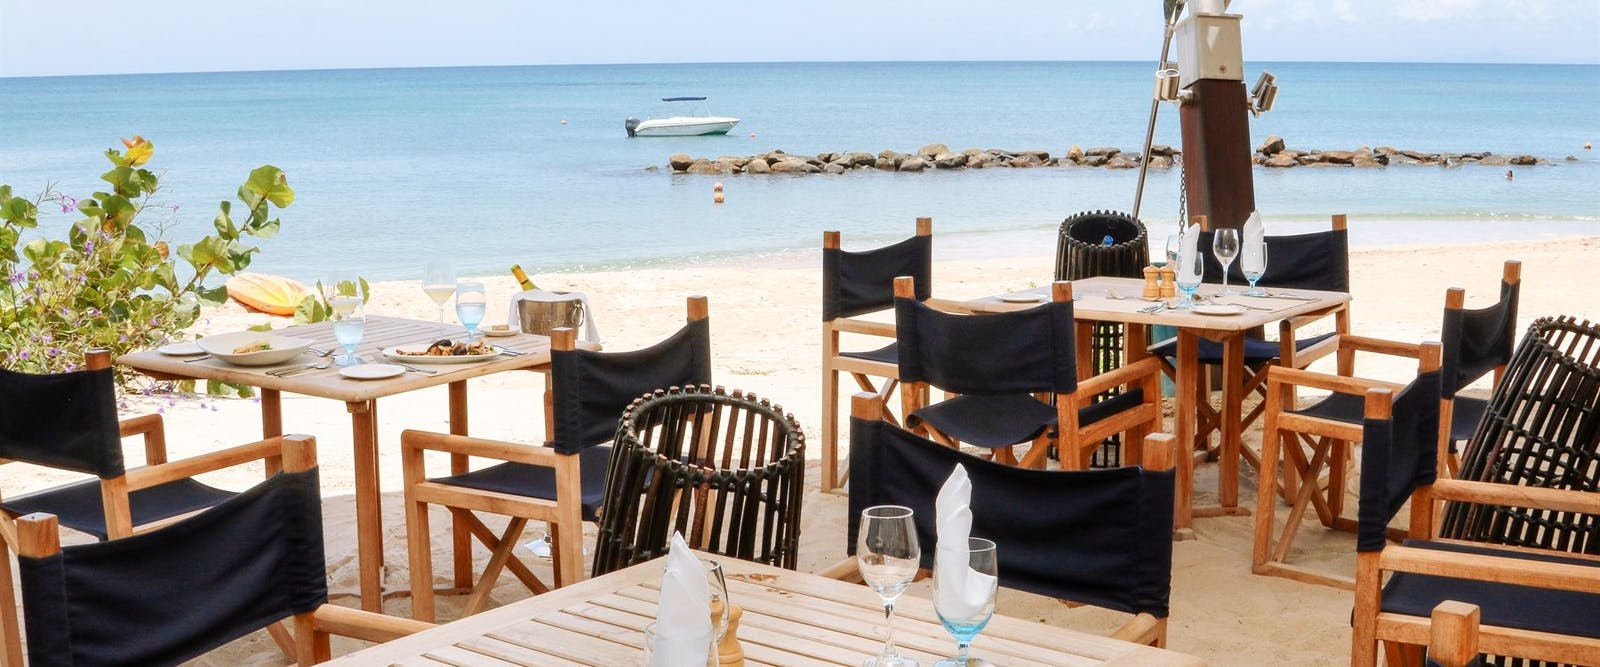 Al fresco beach front dining at Rendezvous, St Lucia